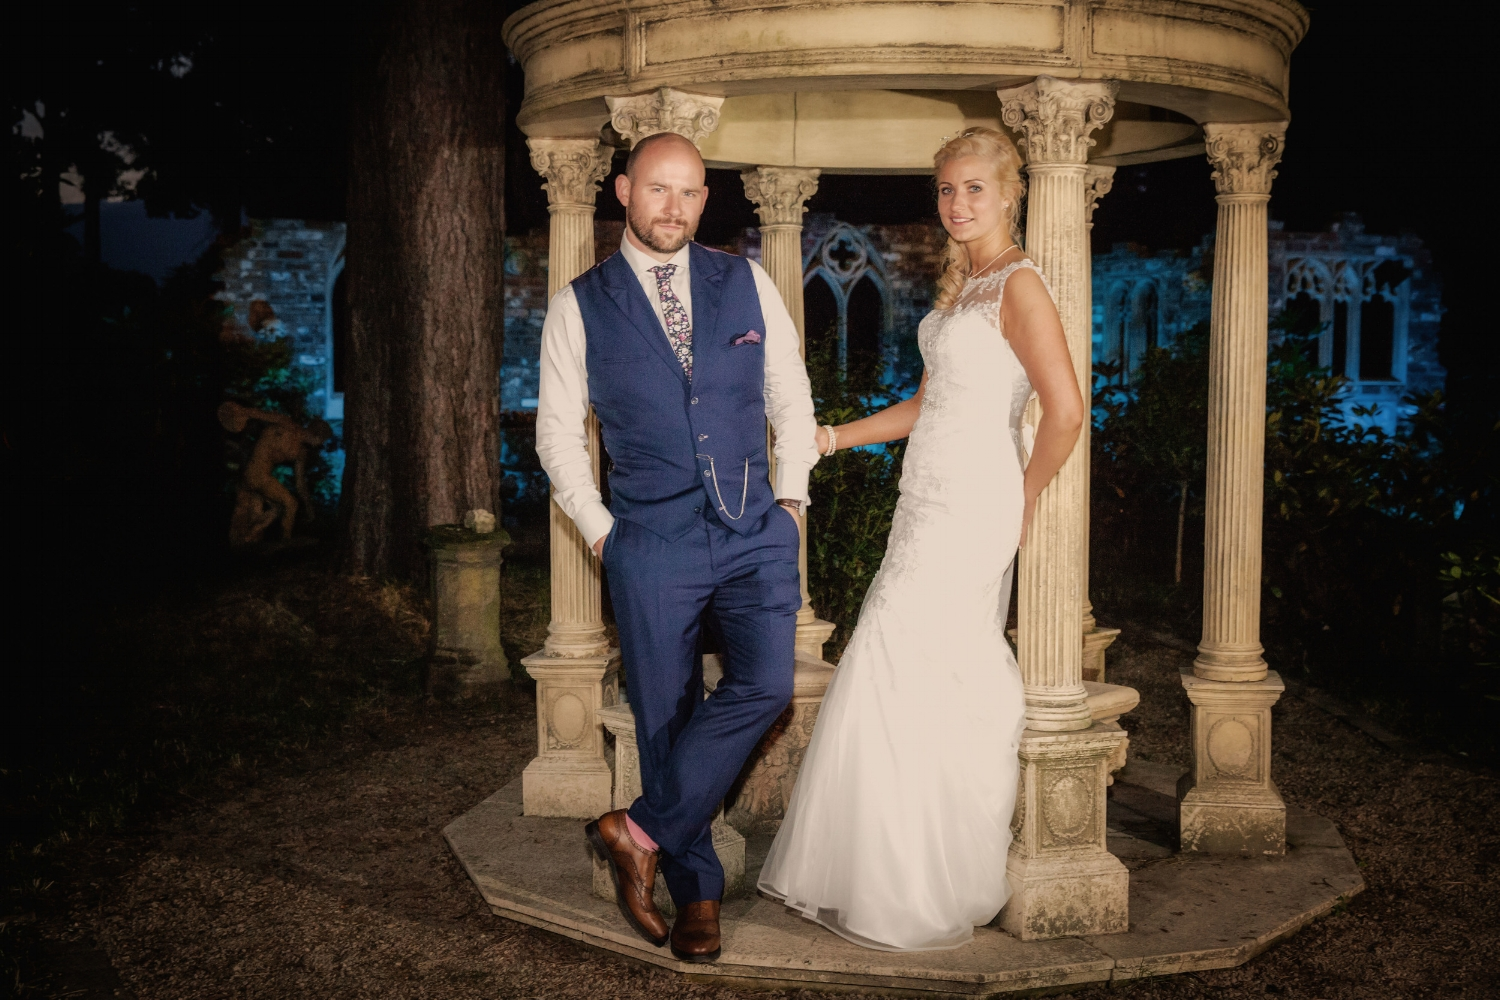 Moxhull Hall, Sutton Coldfield, Mark and Lizzie, Elizabeth, O'Donnel, Lucria Creative, Wayne Hudson,  Wedding, bride, groom, photography, coventry